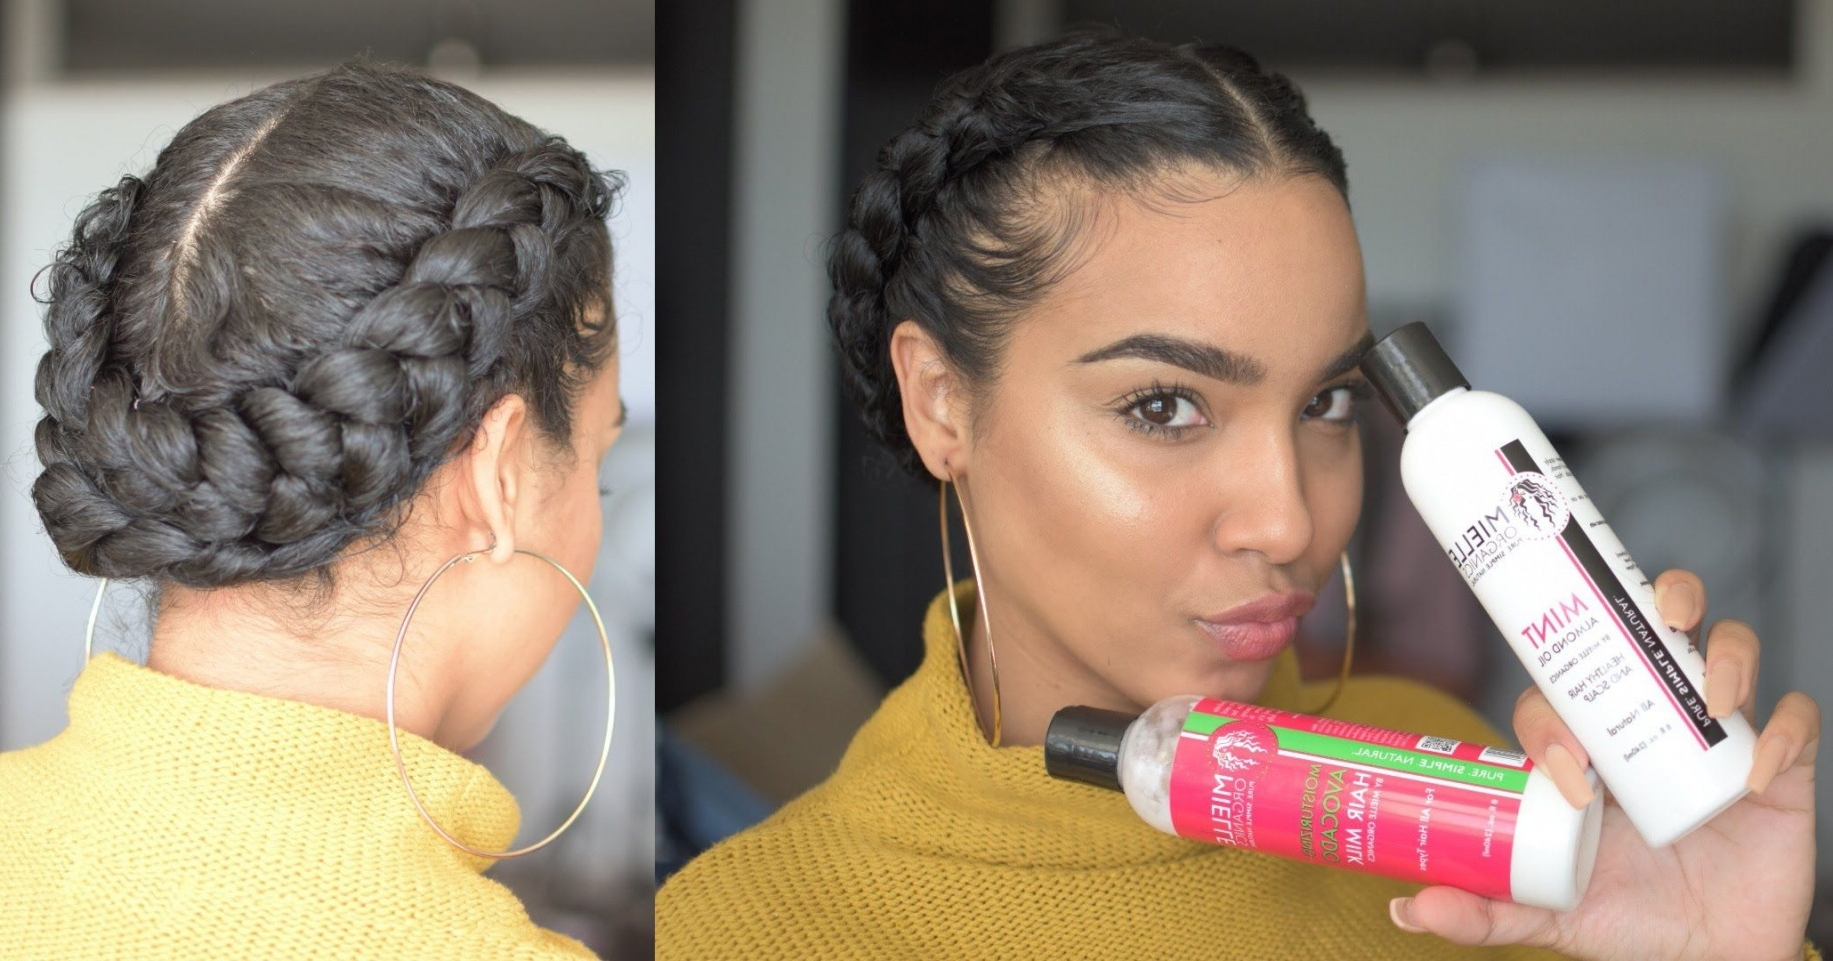 Shocking Quick Braided Hairstyles For Natural Hair Elegant And Easy With Regard To Most Up To Date Quick Braided Hairstyles For Medium Hair (View 12 of 15)